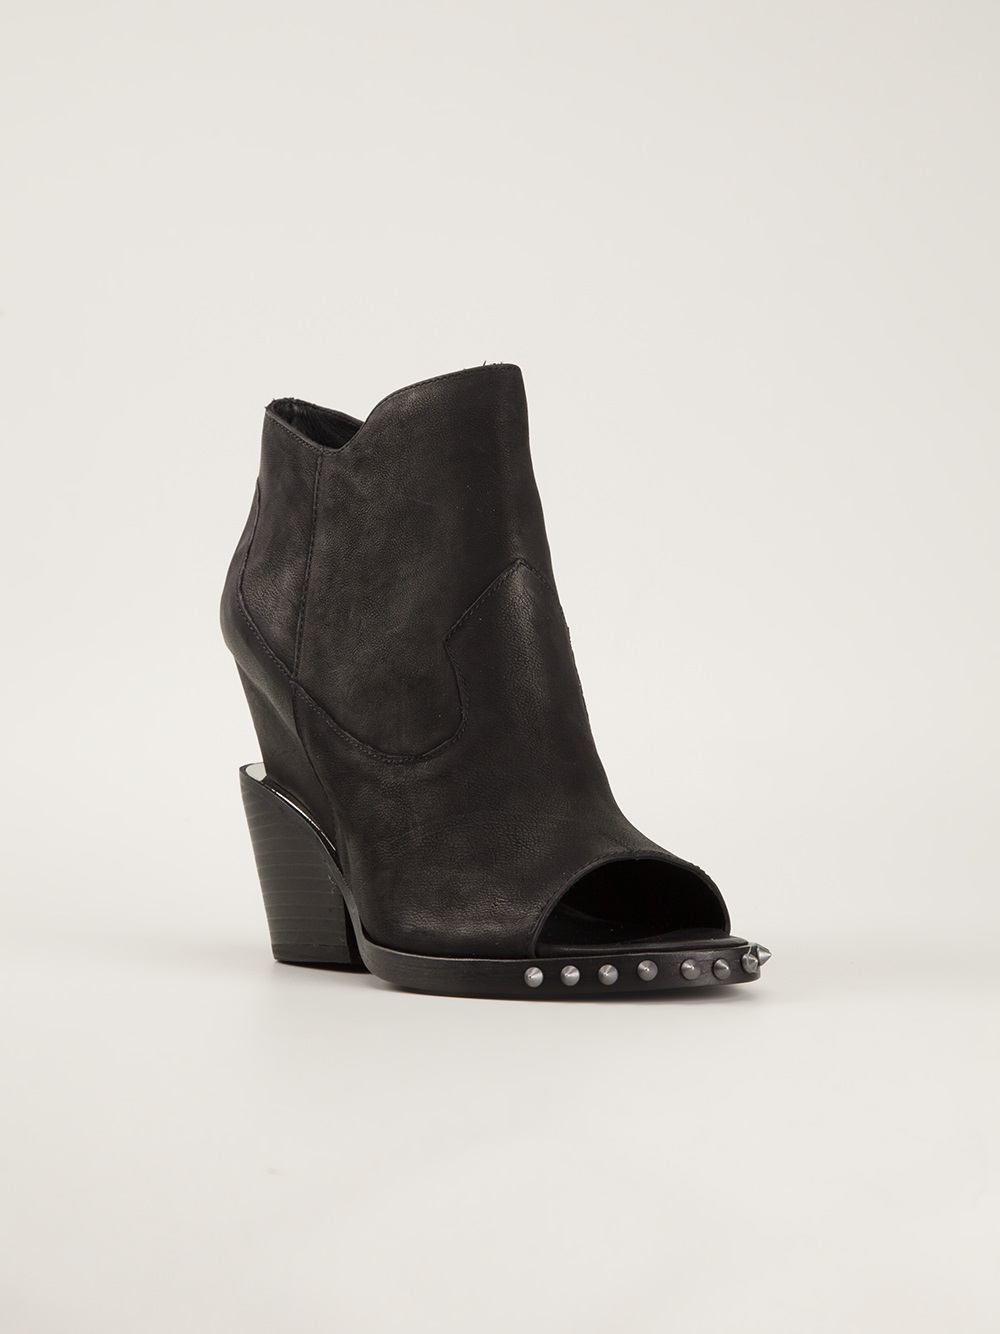 Ash Open Toe Ankle Boots in Black | Lyst